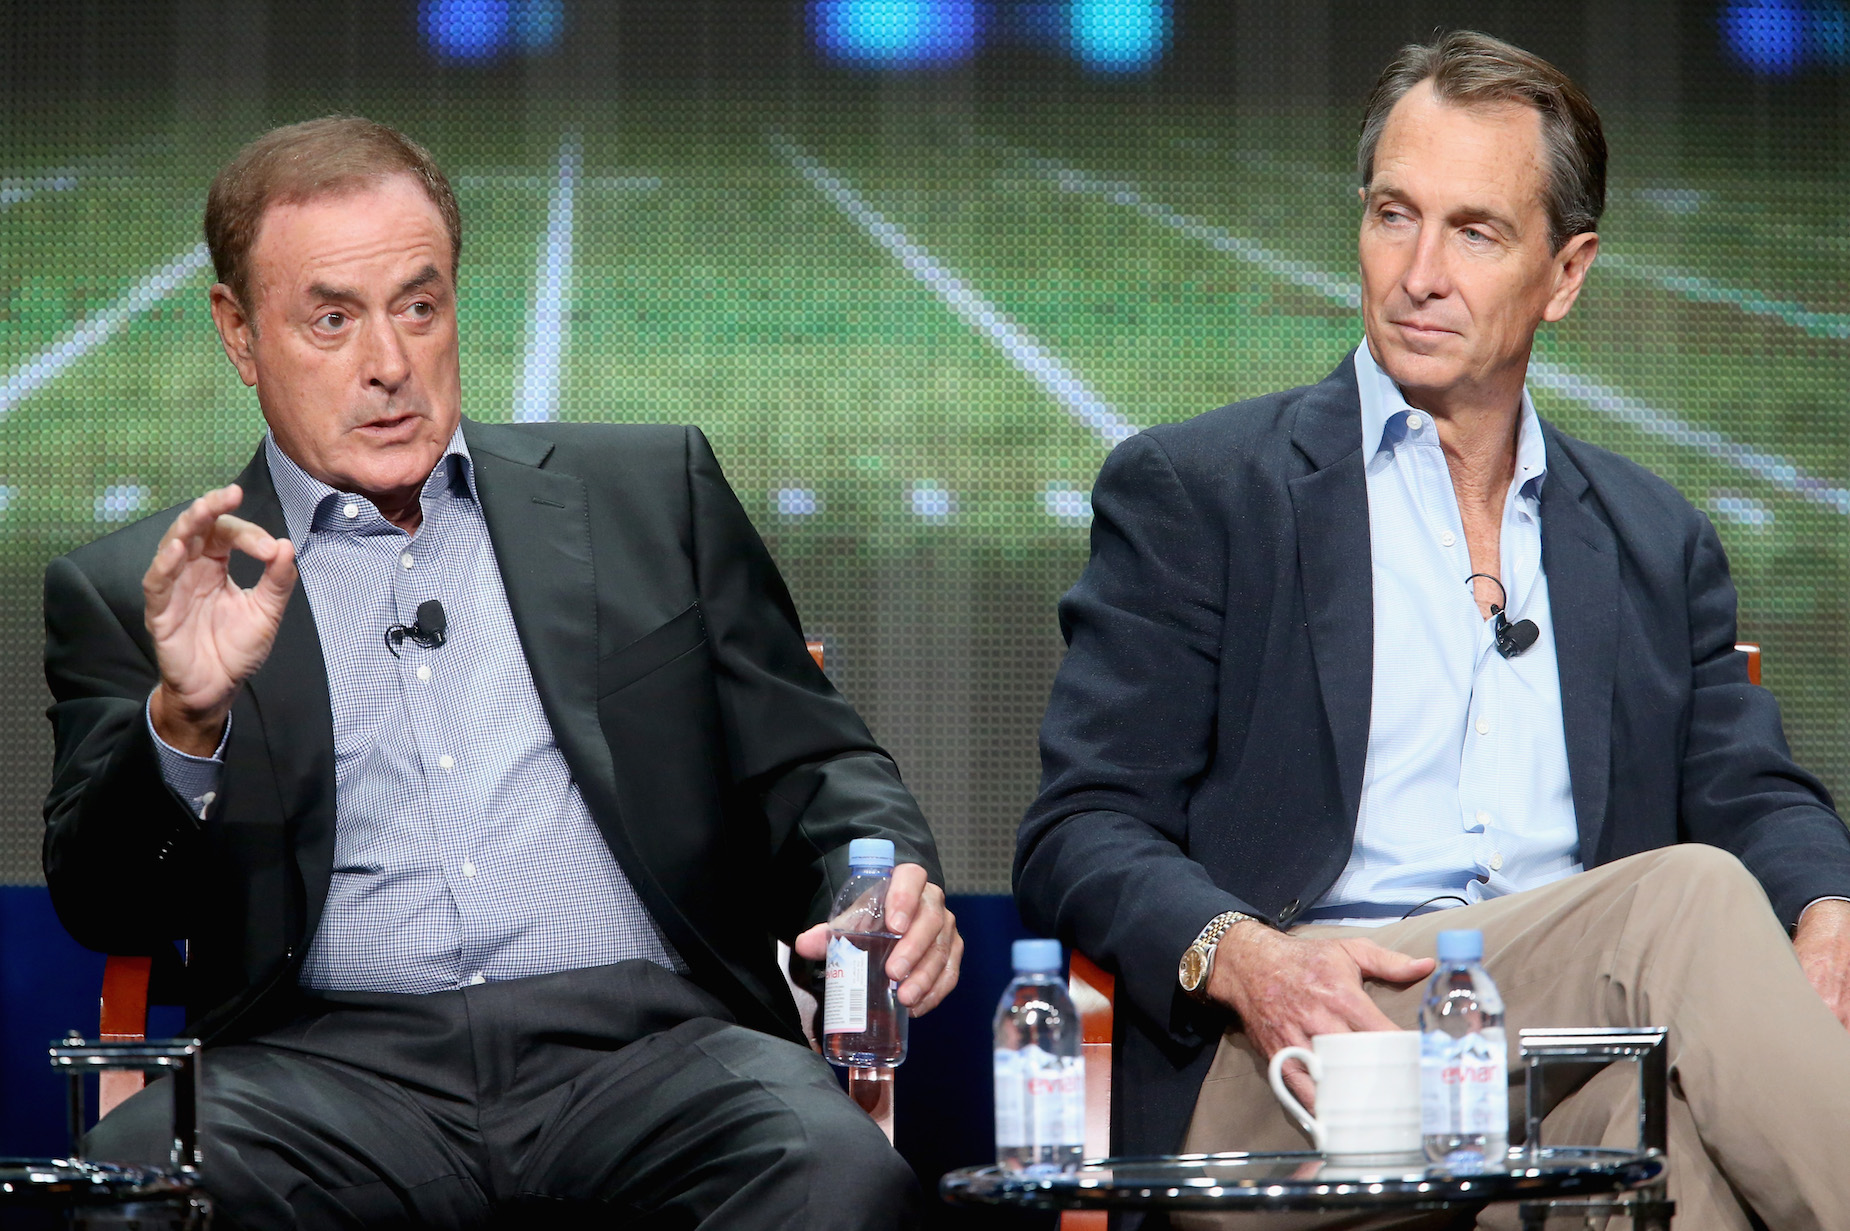 Al Michaels apparently eats an entire dinner during Sunday Night Football, according to Cris Collinsworth.